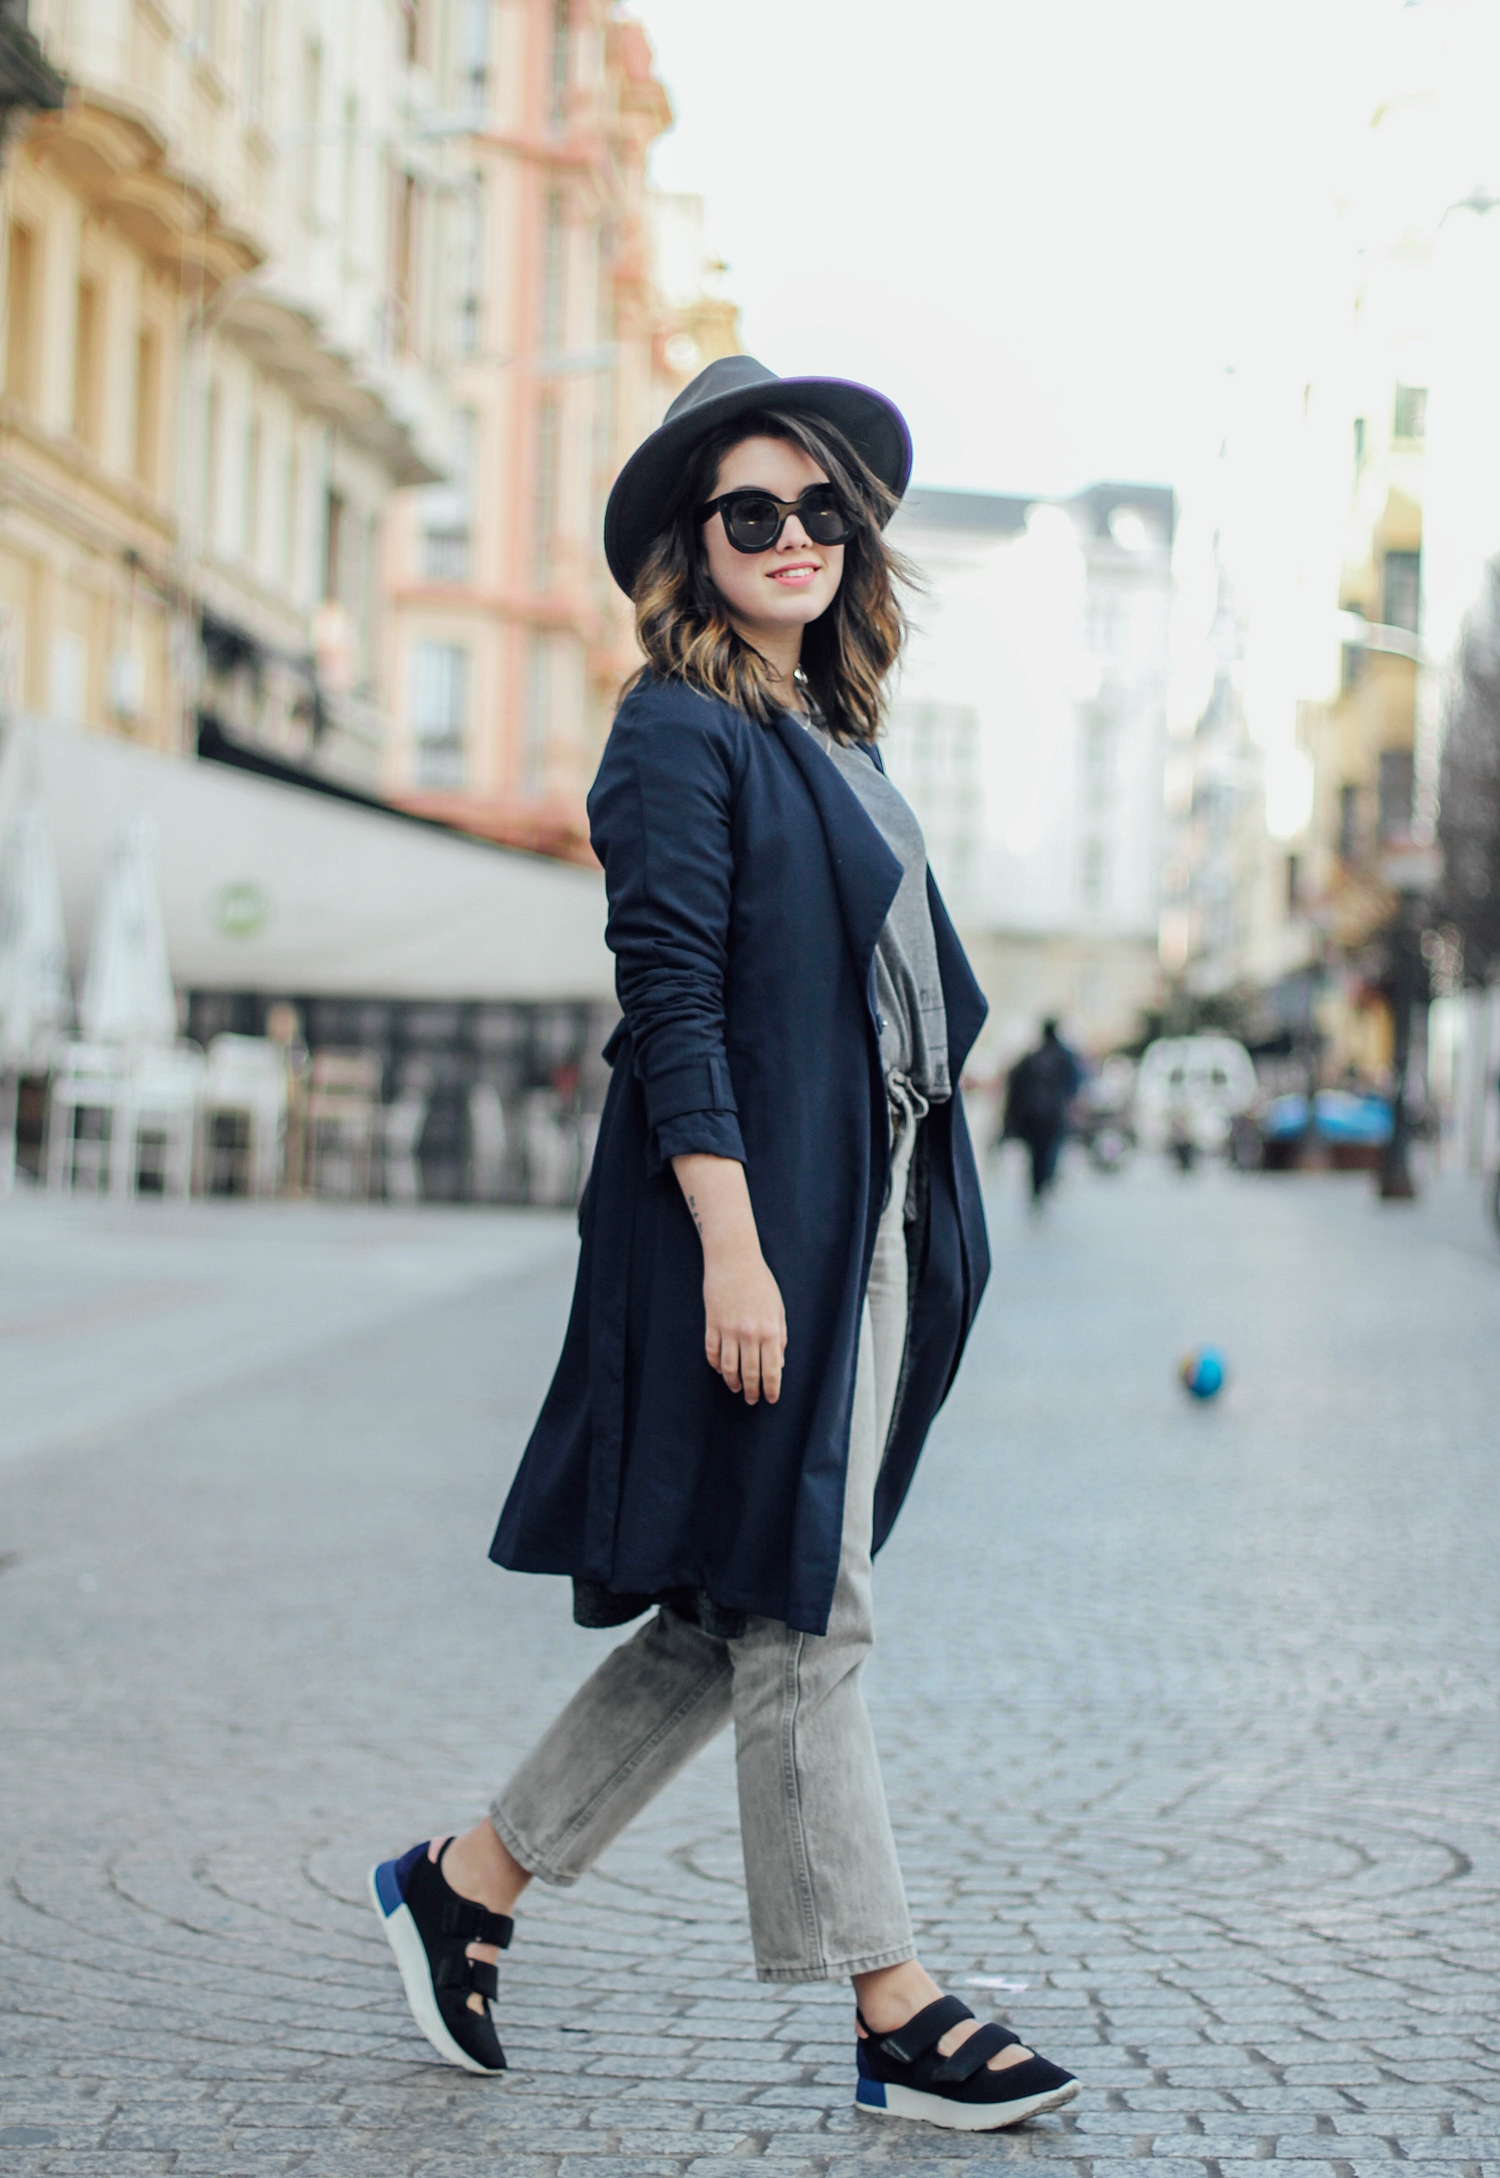 flatform velcro sneakers uterque balmain inspiration with long trench streetstyle